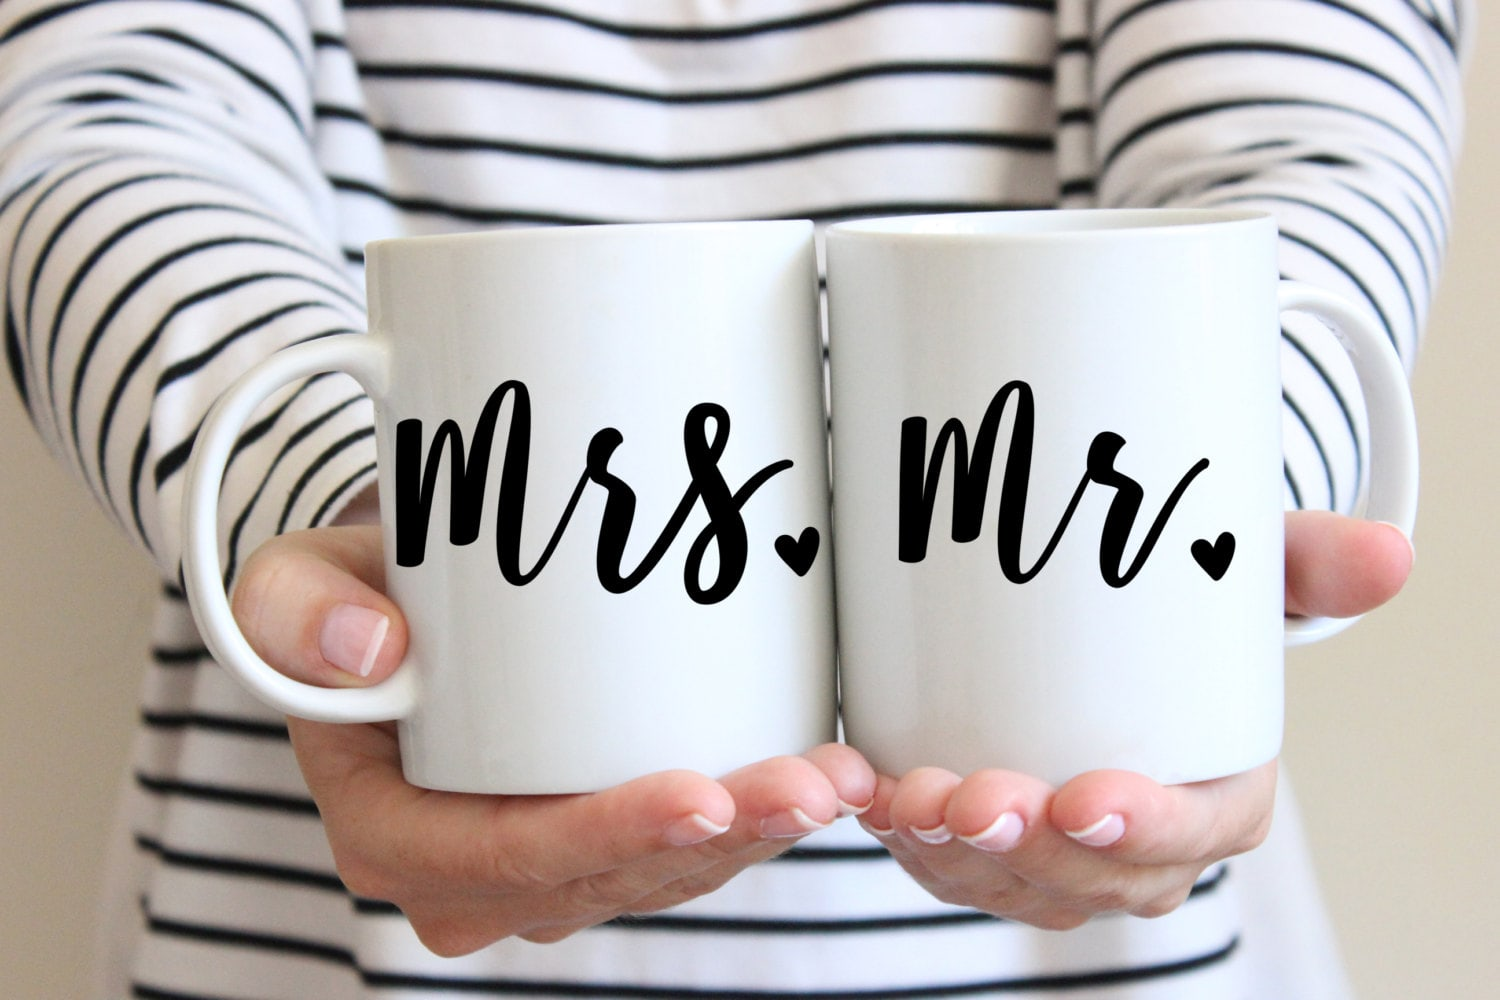 Extraordinary Newlyweds Image Courtesy Etsy Seller Giftablegoodies Personalized Gifts Newlyweds Who Have Everything Gifts New Sips A Wedding That Newlyweds Will Fall Newlyweds Philippines Love Gifts gifts Gifts For Newlyweds